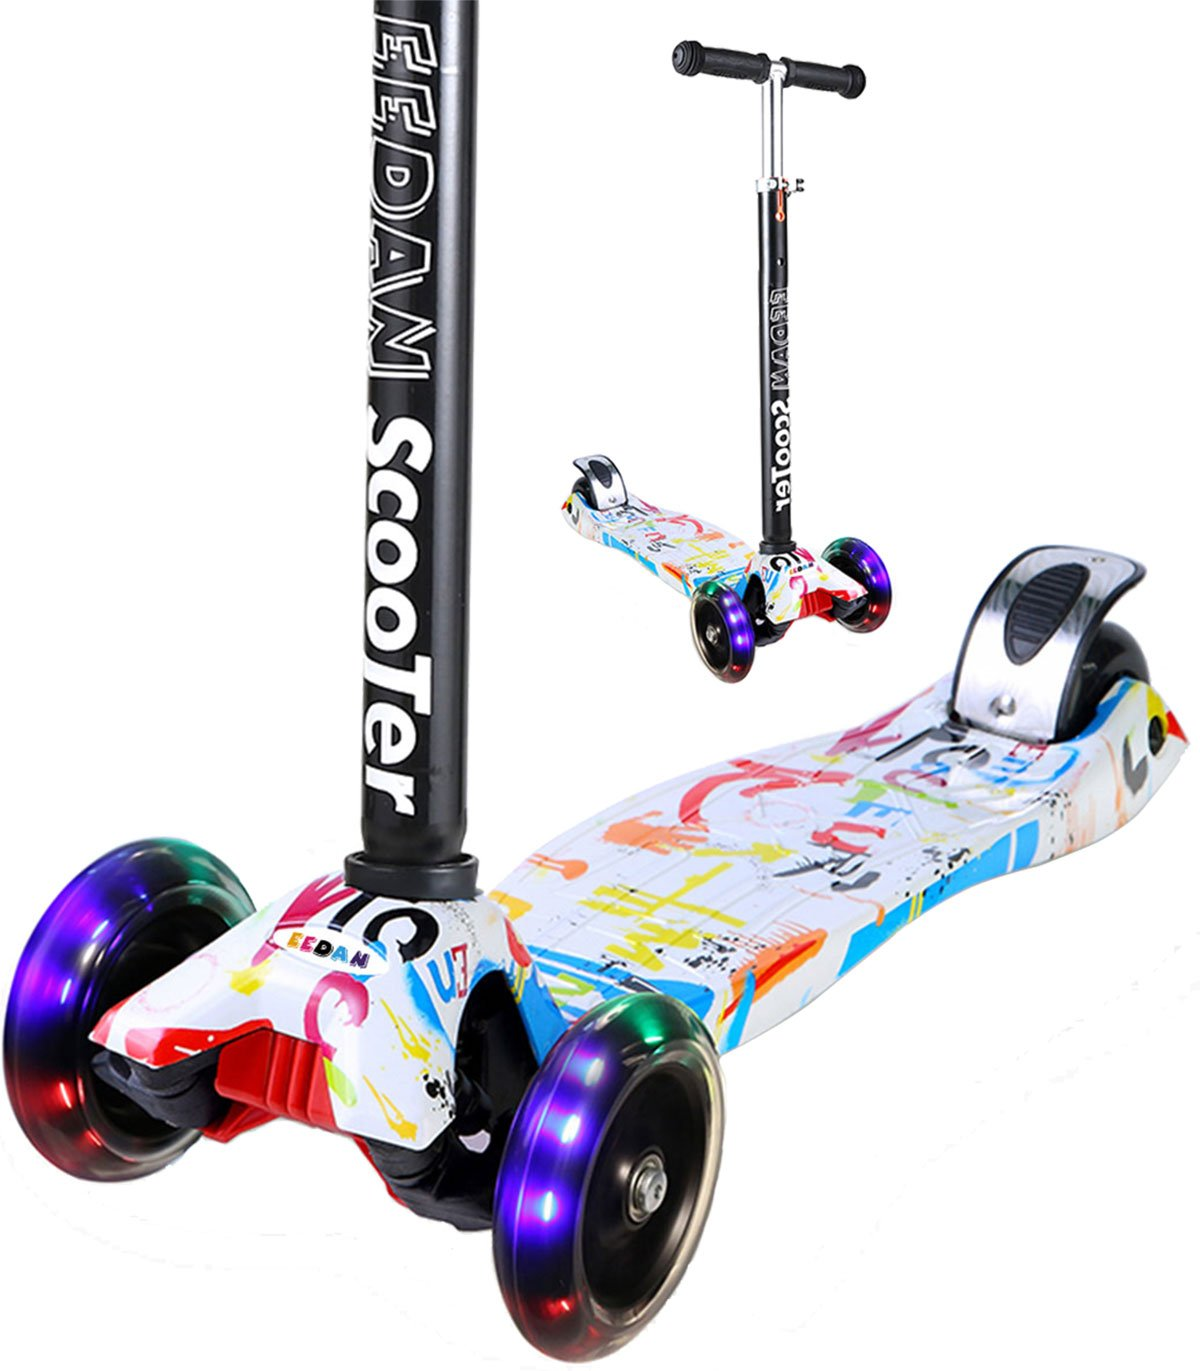 EEDAN Scooter for Kids 3 Wheel T-bar Adjustable Height Handle Kick Scooters with Deluxe PU Flashing Wheels Wide Deck for Boys/Girls from 2 to 14 Year-Old (Grafitti) by EEDAN